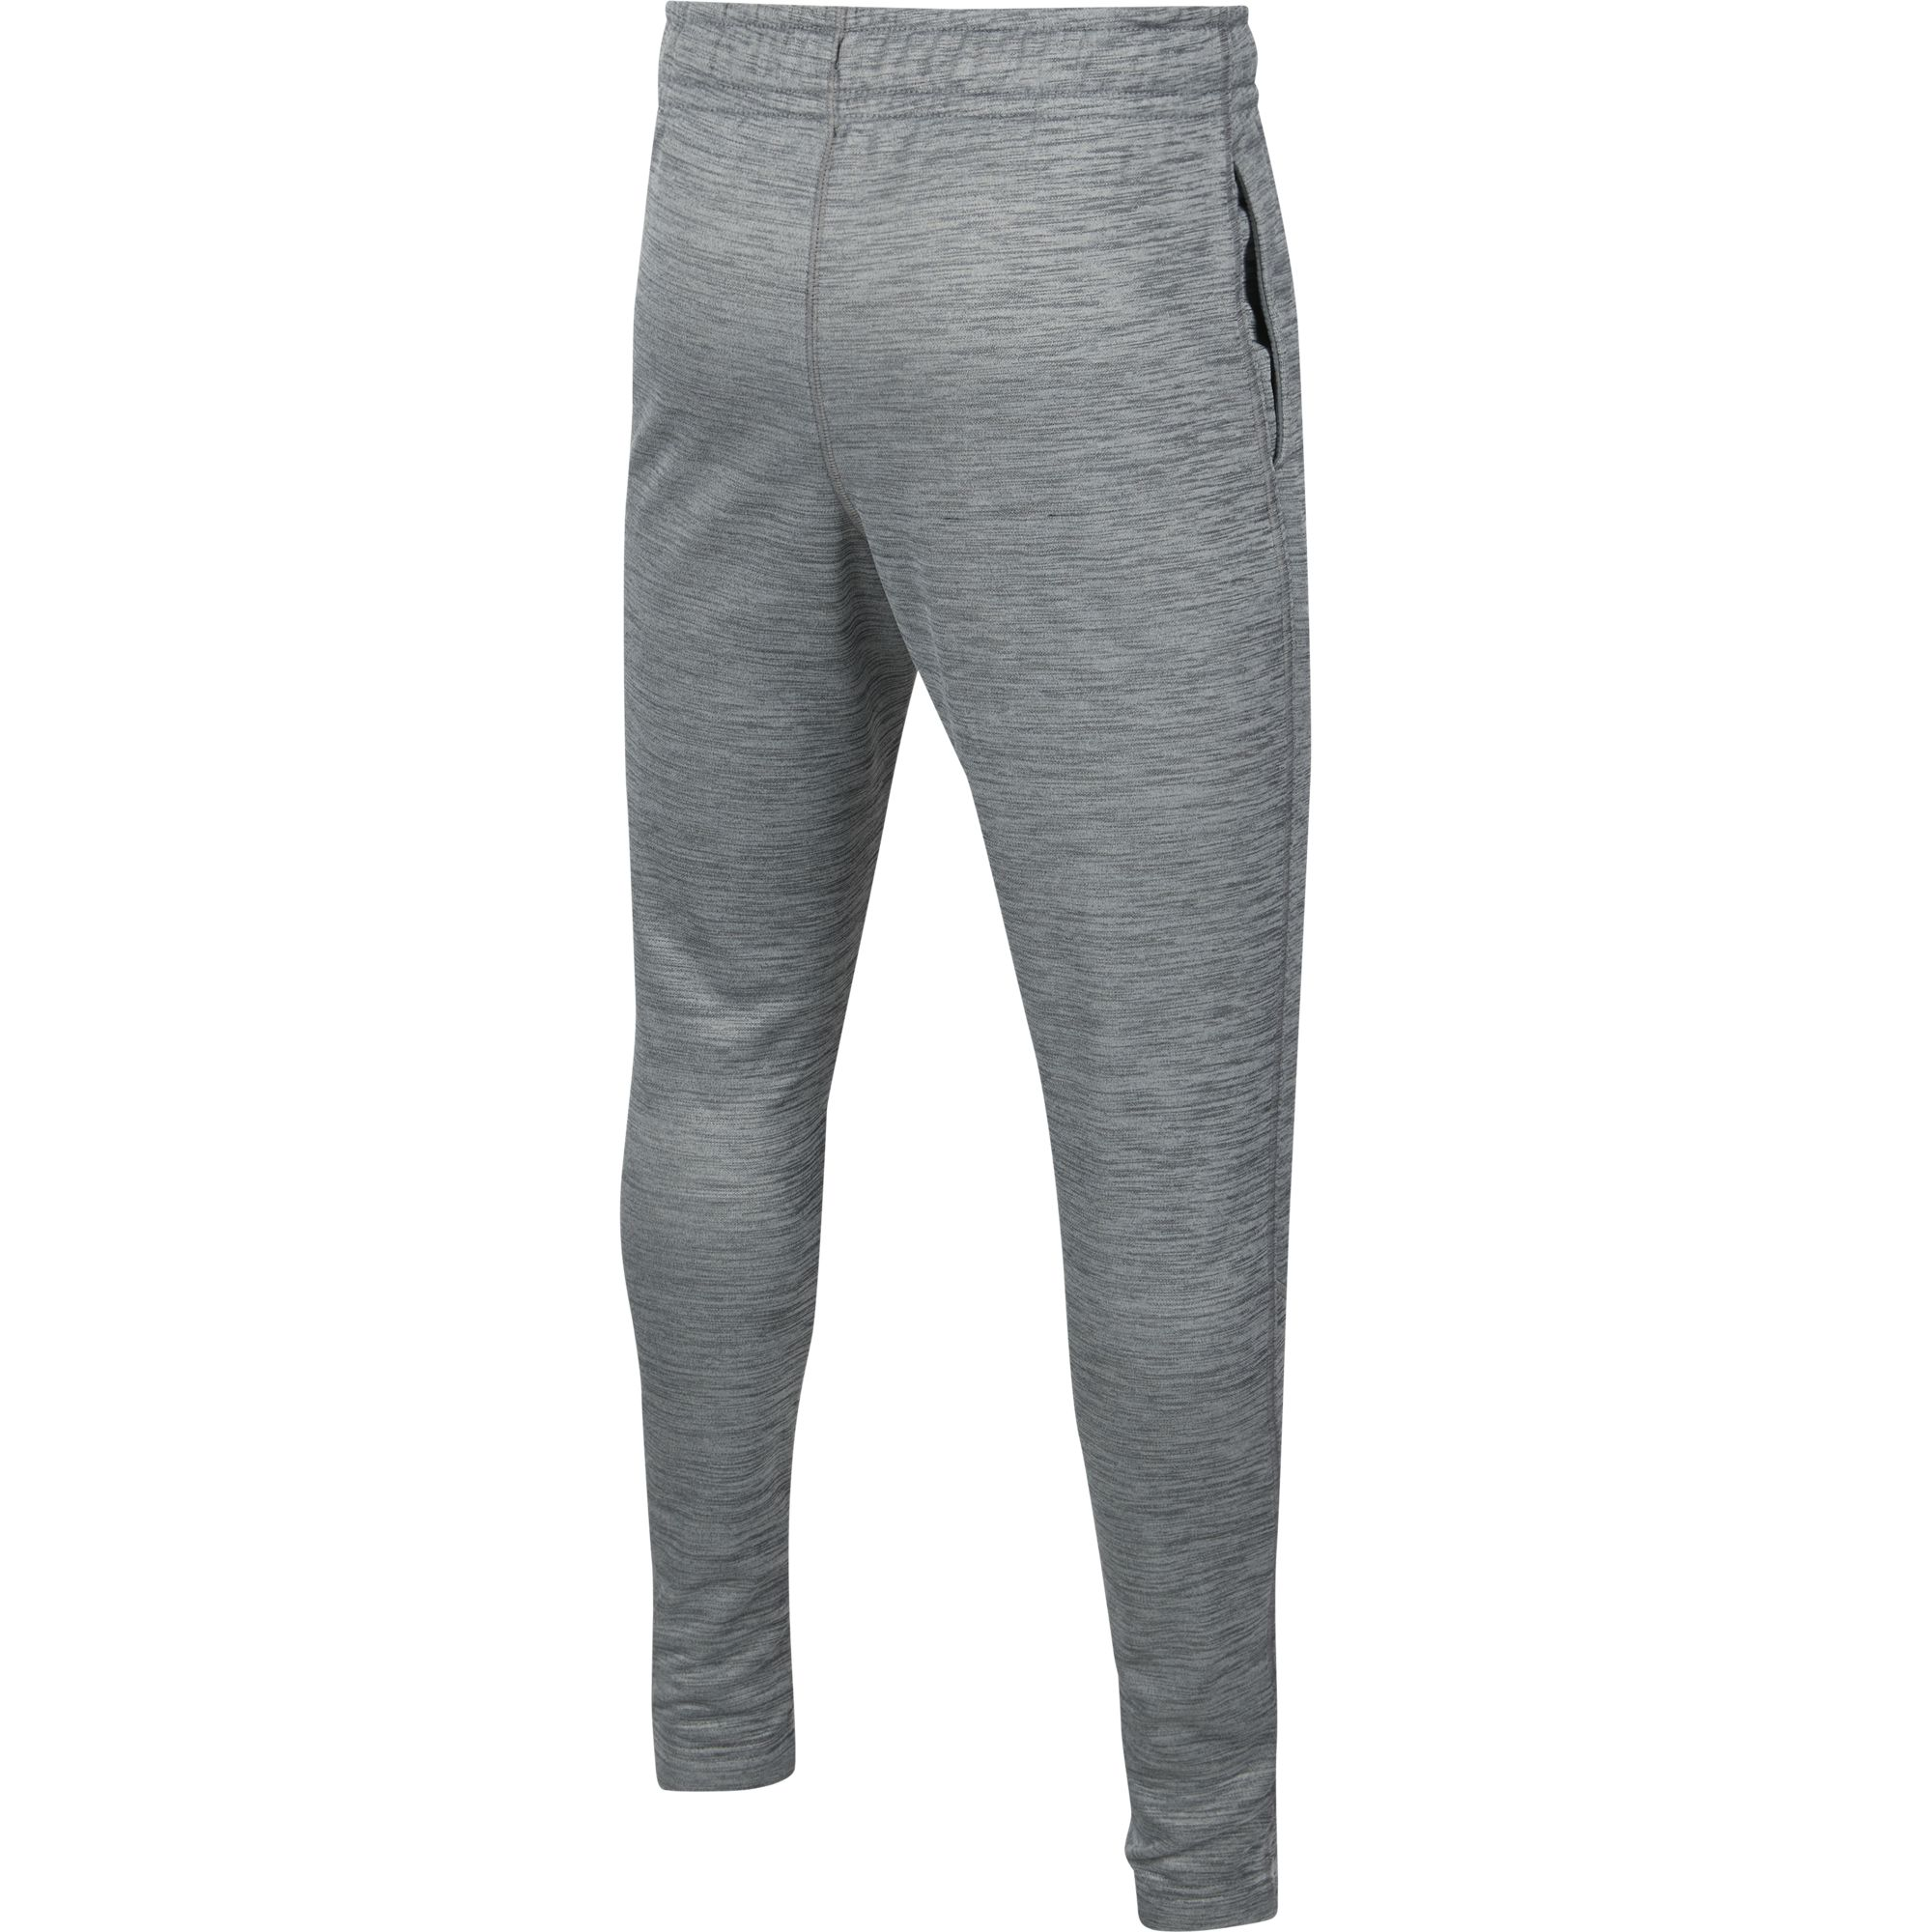 Boys' Therma GFX Tapered Jogger Pants, Charcoal,Smoke,Steel, swatch